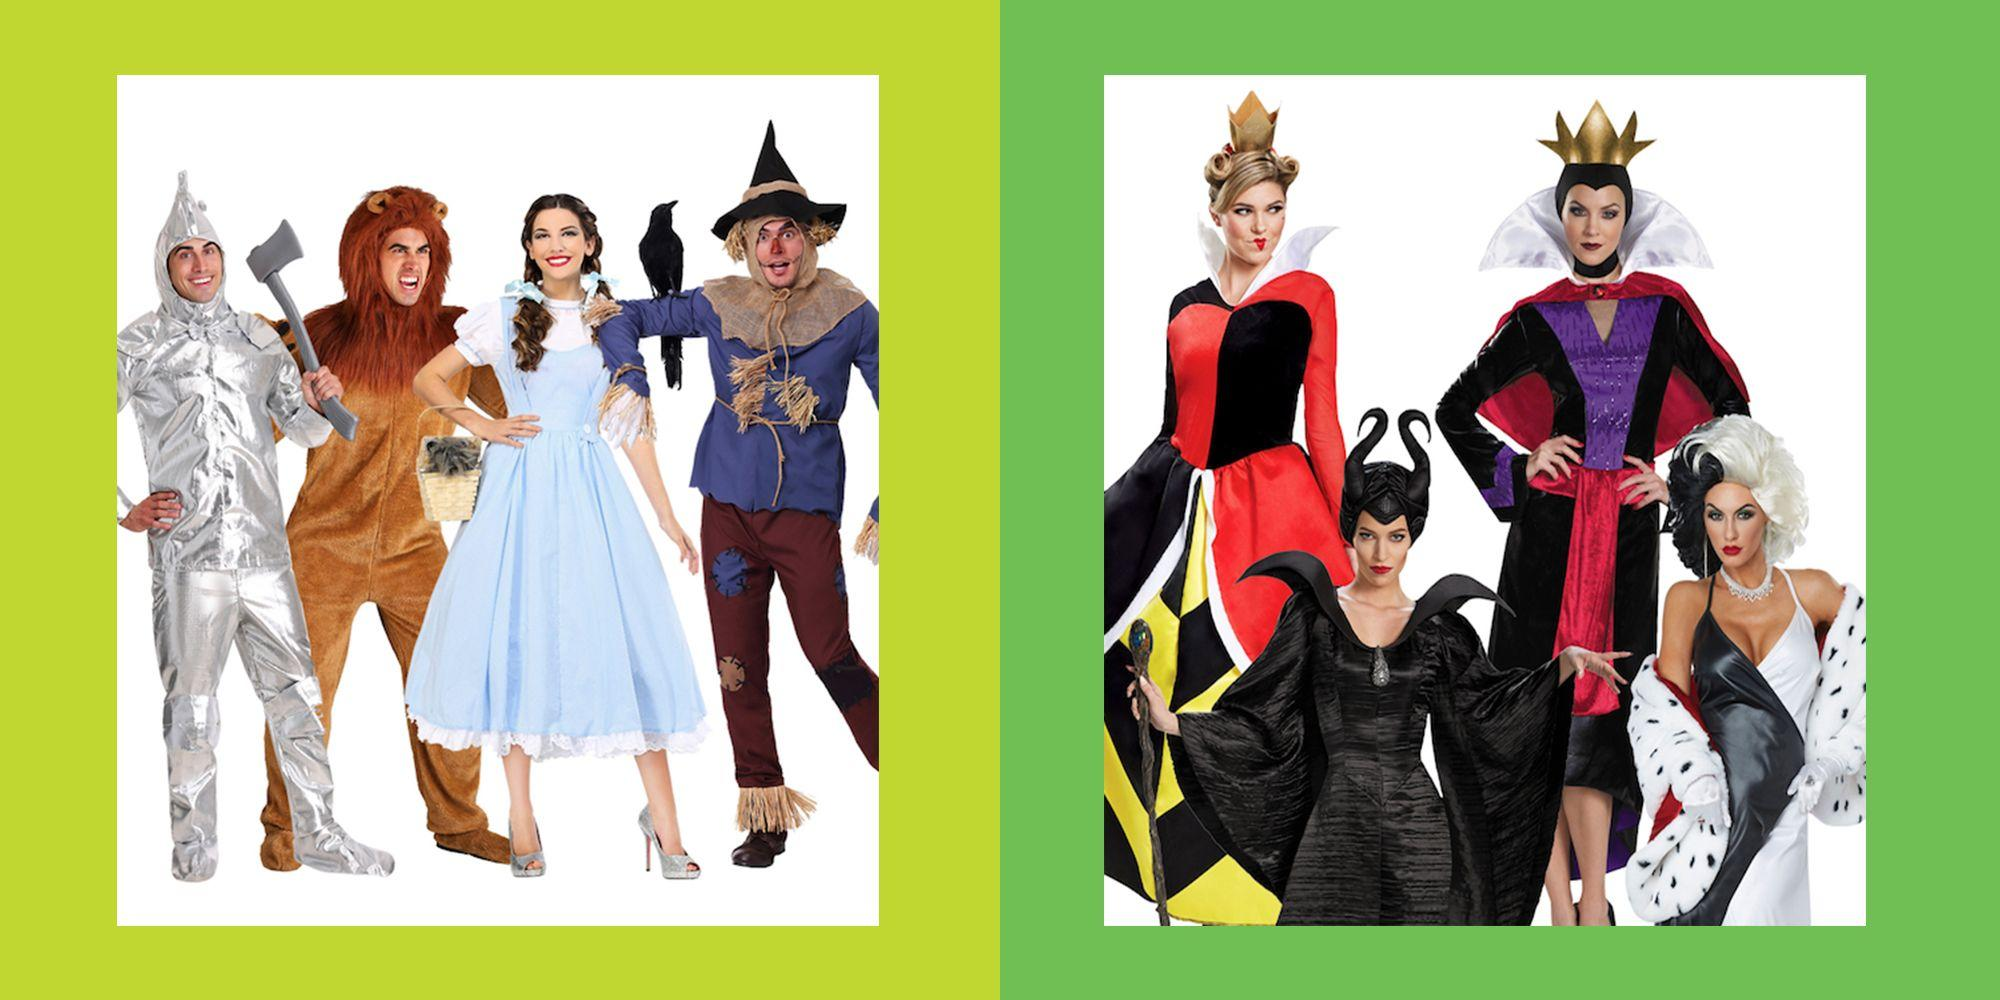 Friend Group Halloween Costumes Kids.Crush Halloween This Year With These 32 Group Costumes